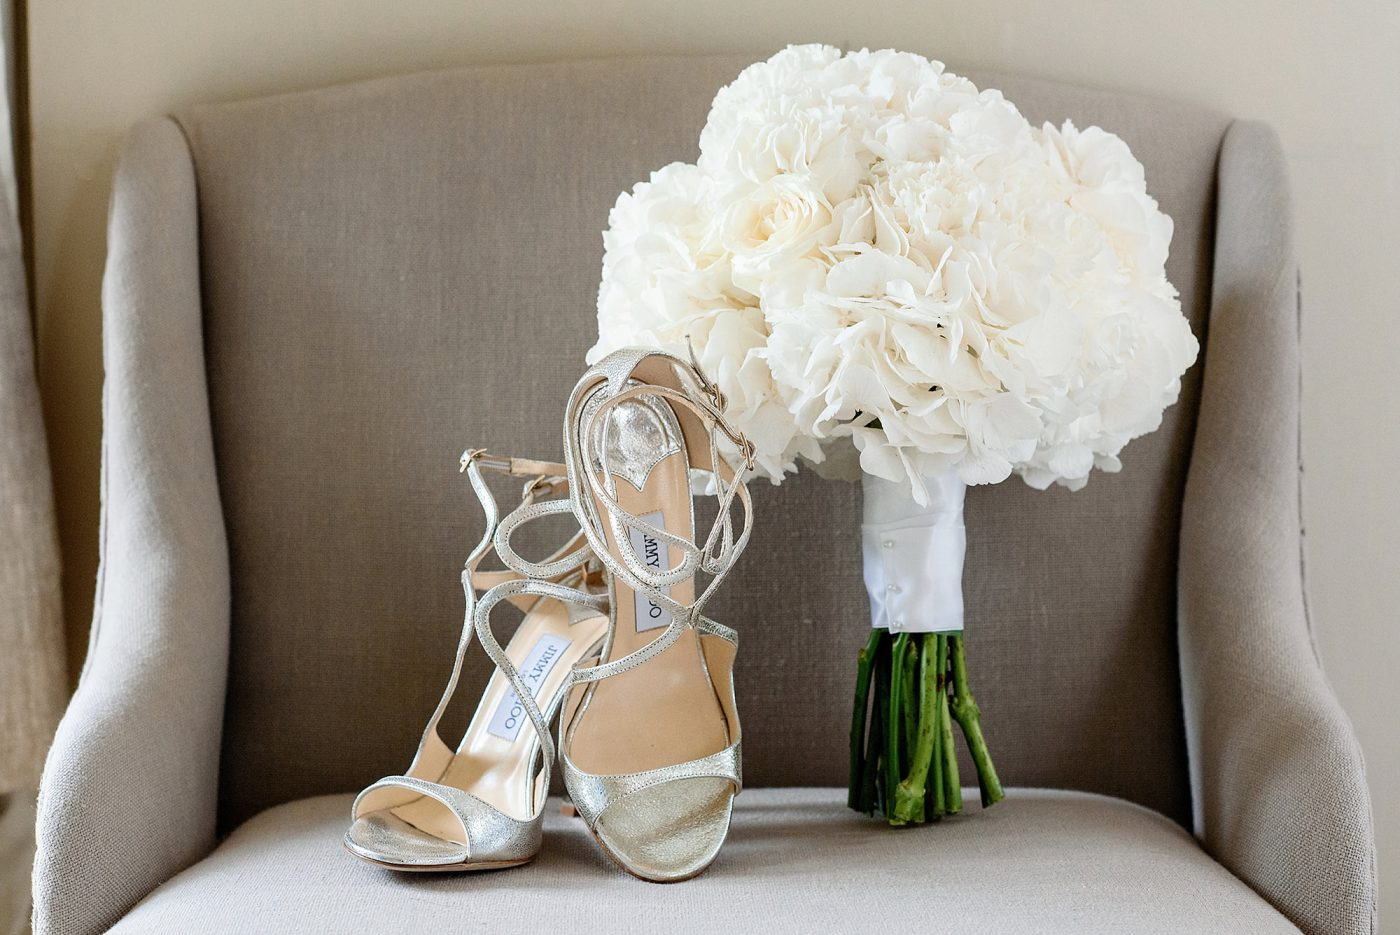 jimmy choo shoes and white bouquet